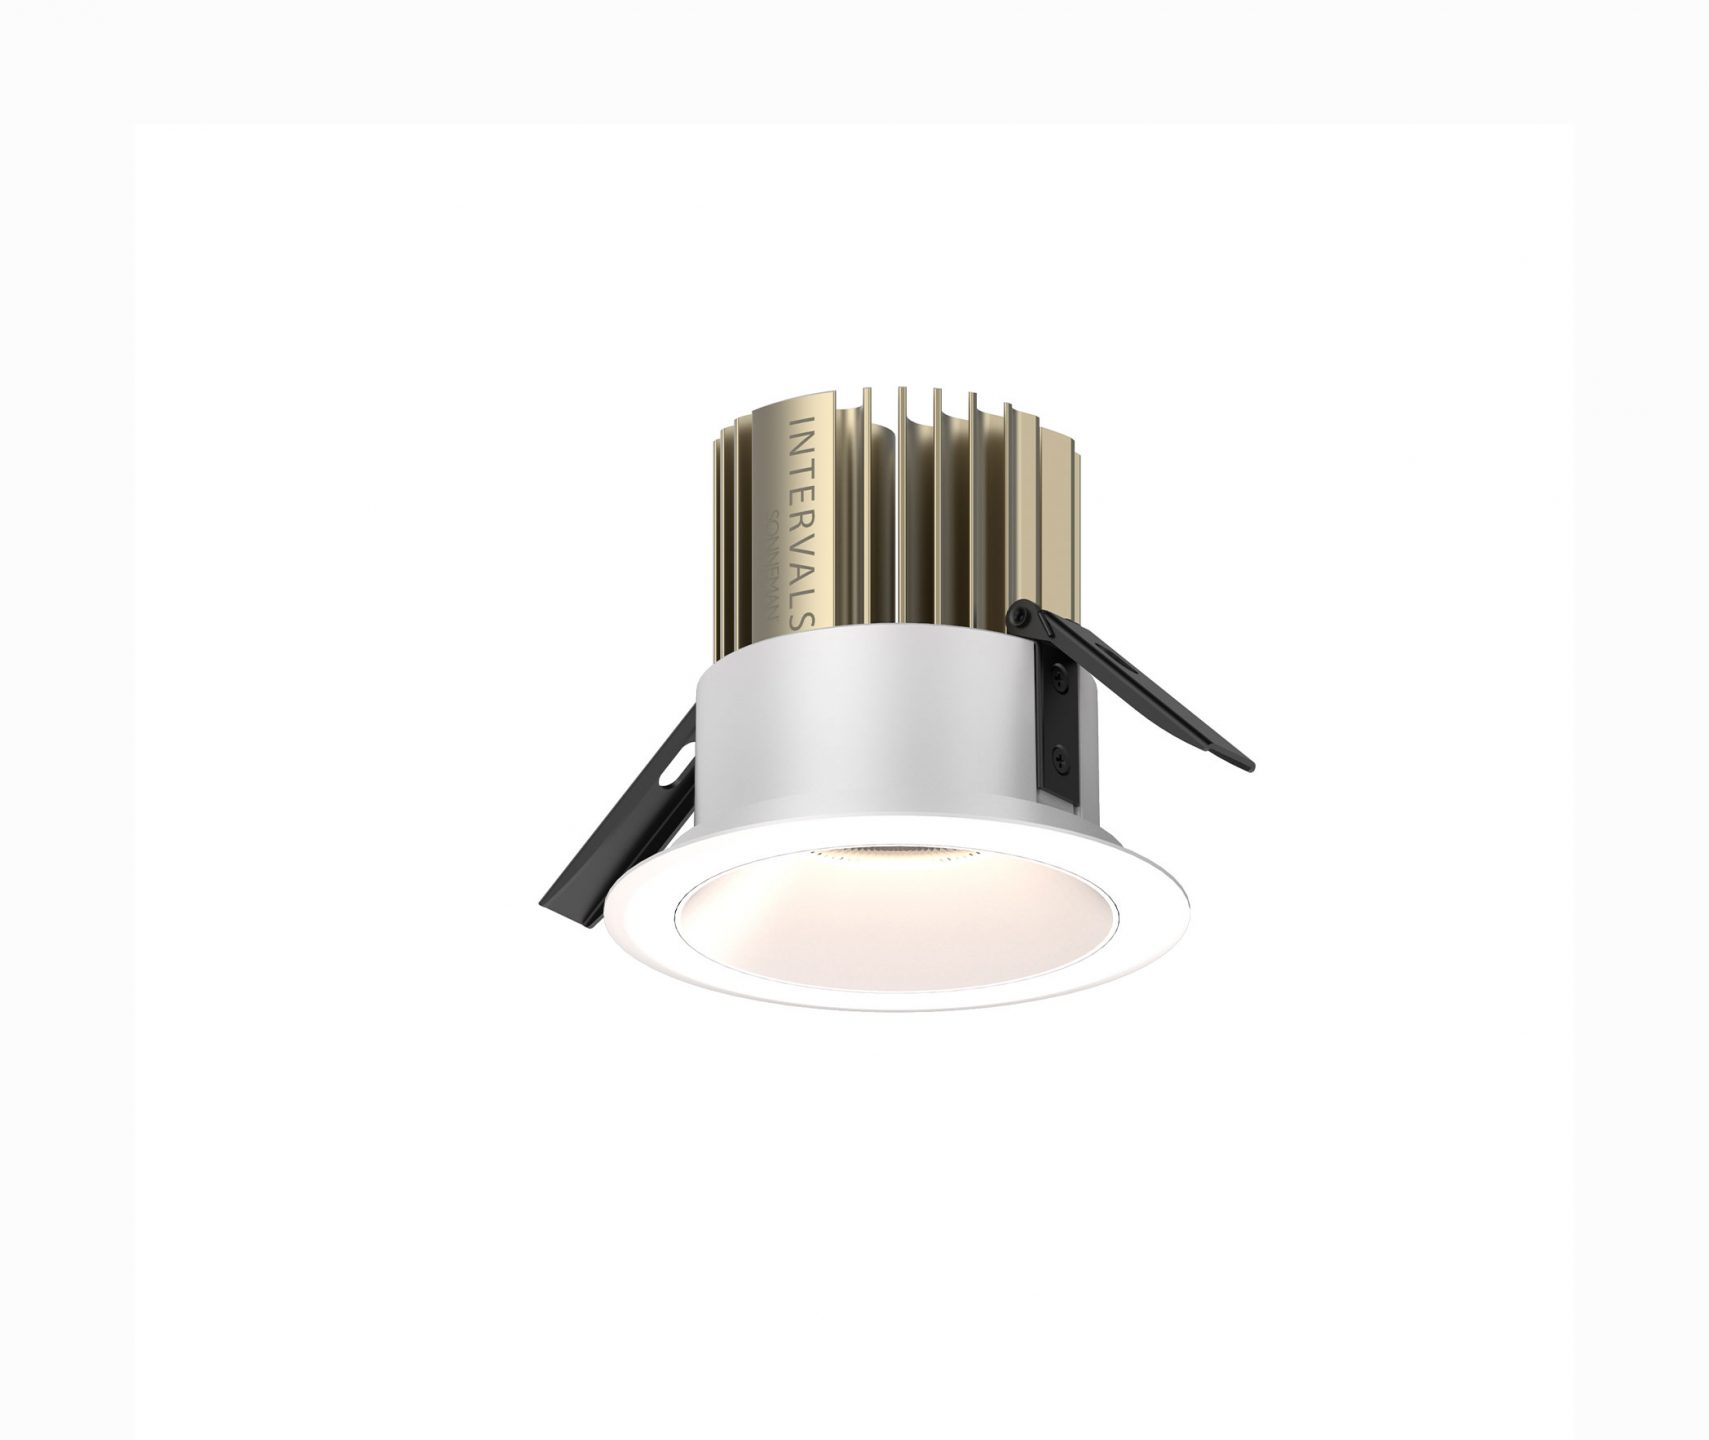 SONNEMAN_Intervals-Recessed-Downlights-Fixed-Round-Bevel-3_int_products